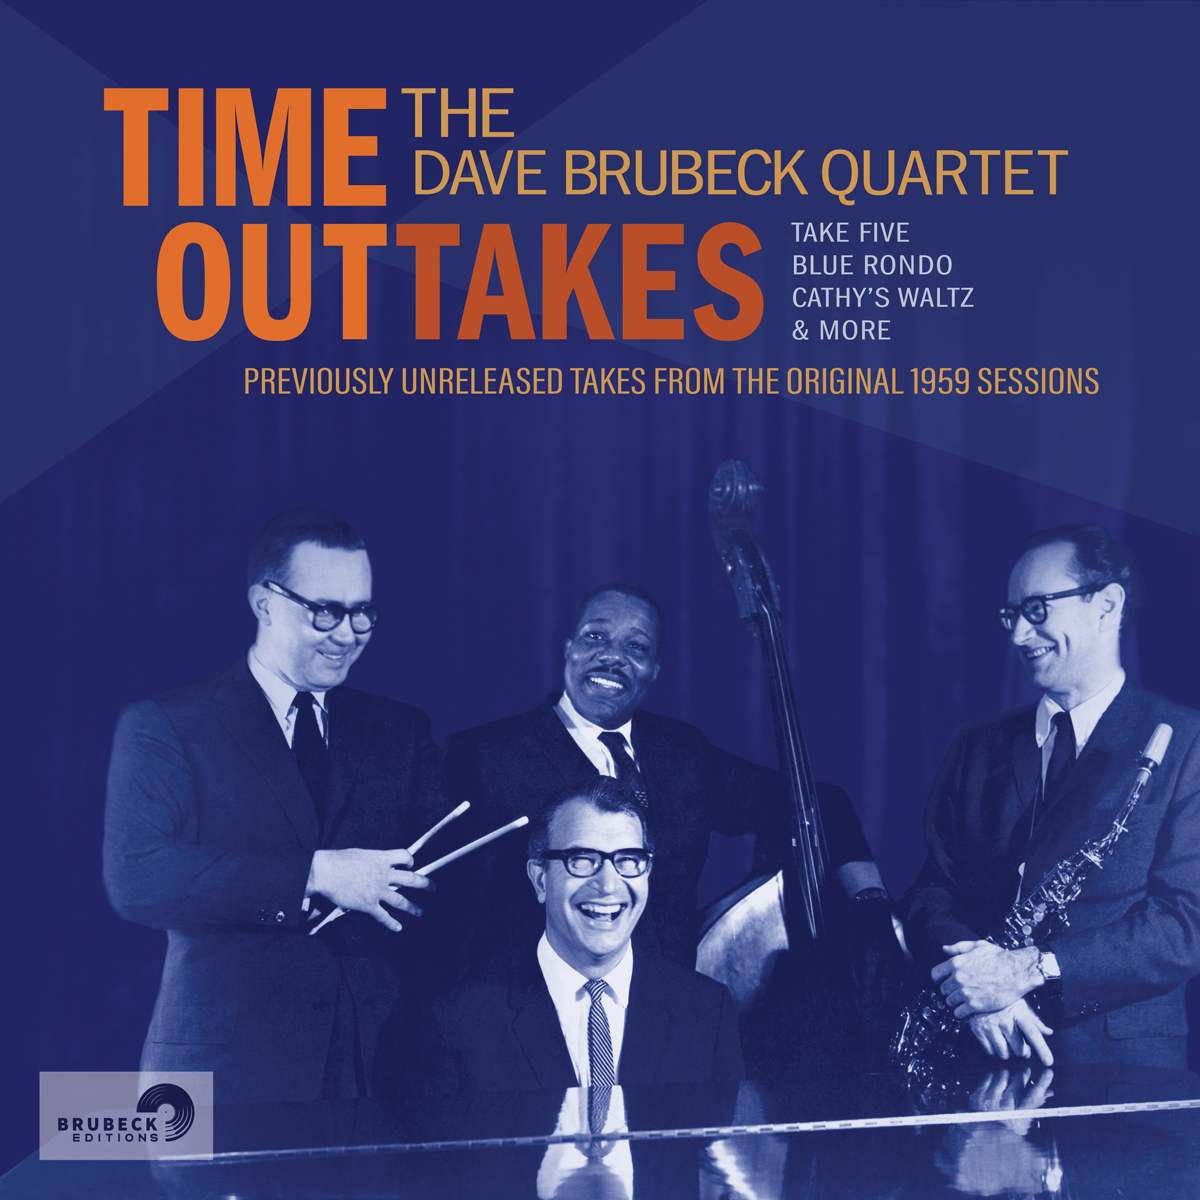 Time The Dave Brubeck Quartet Outtakes